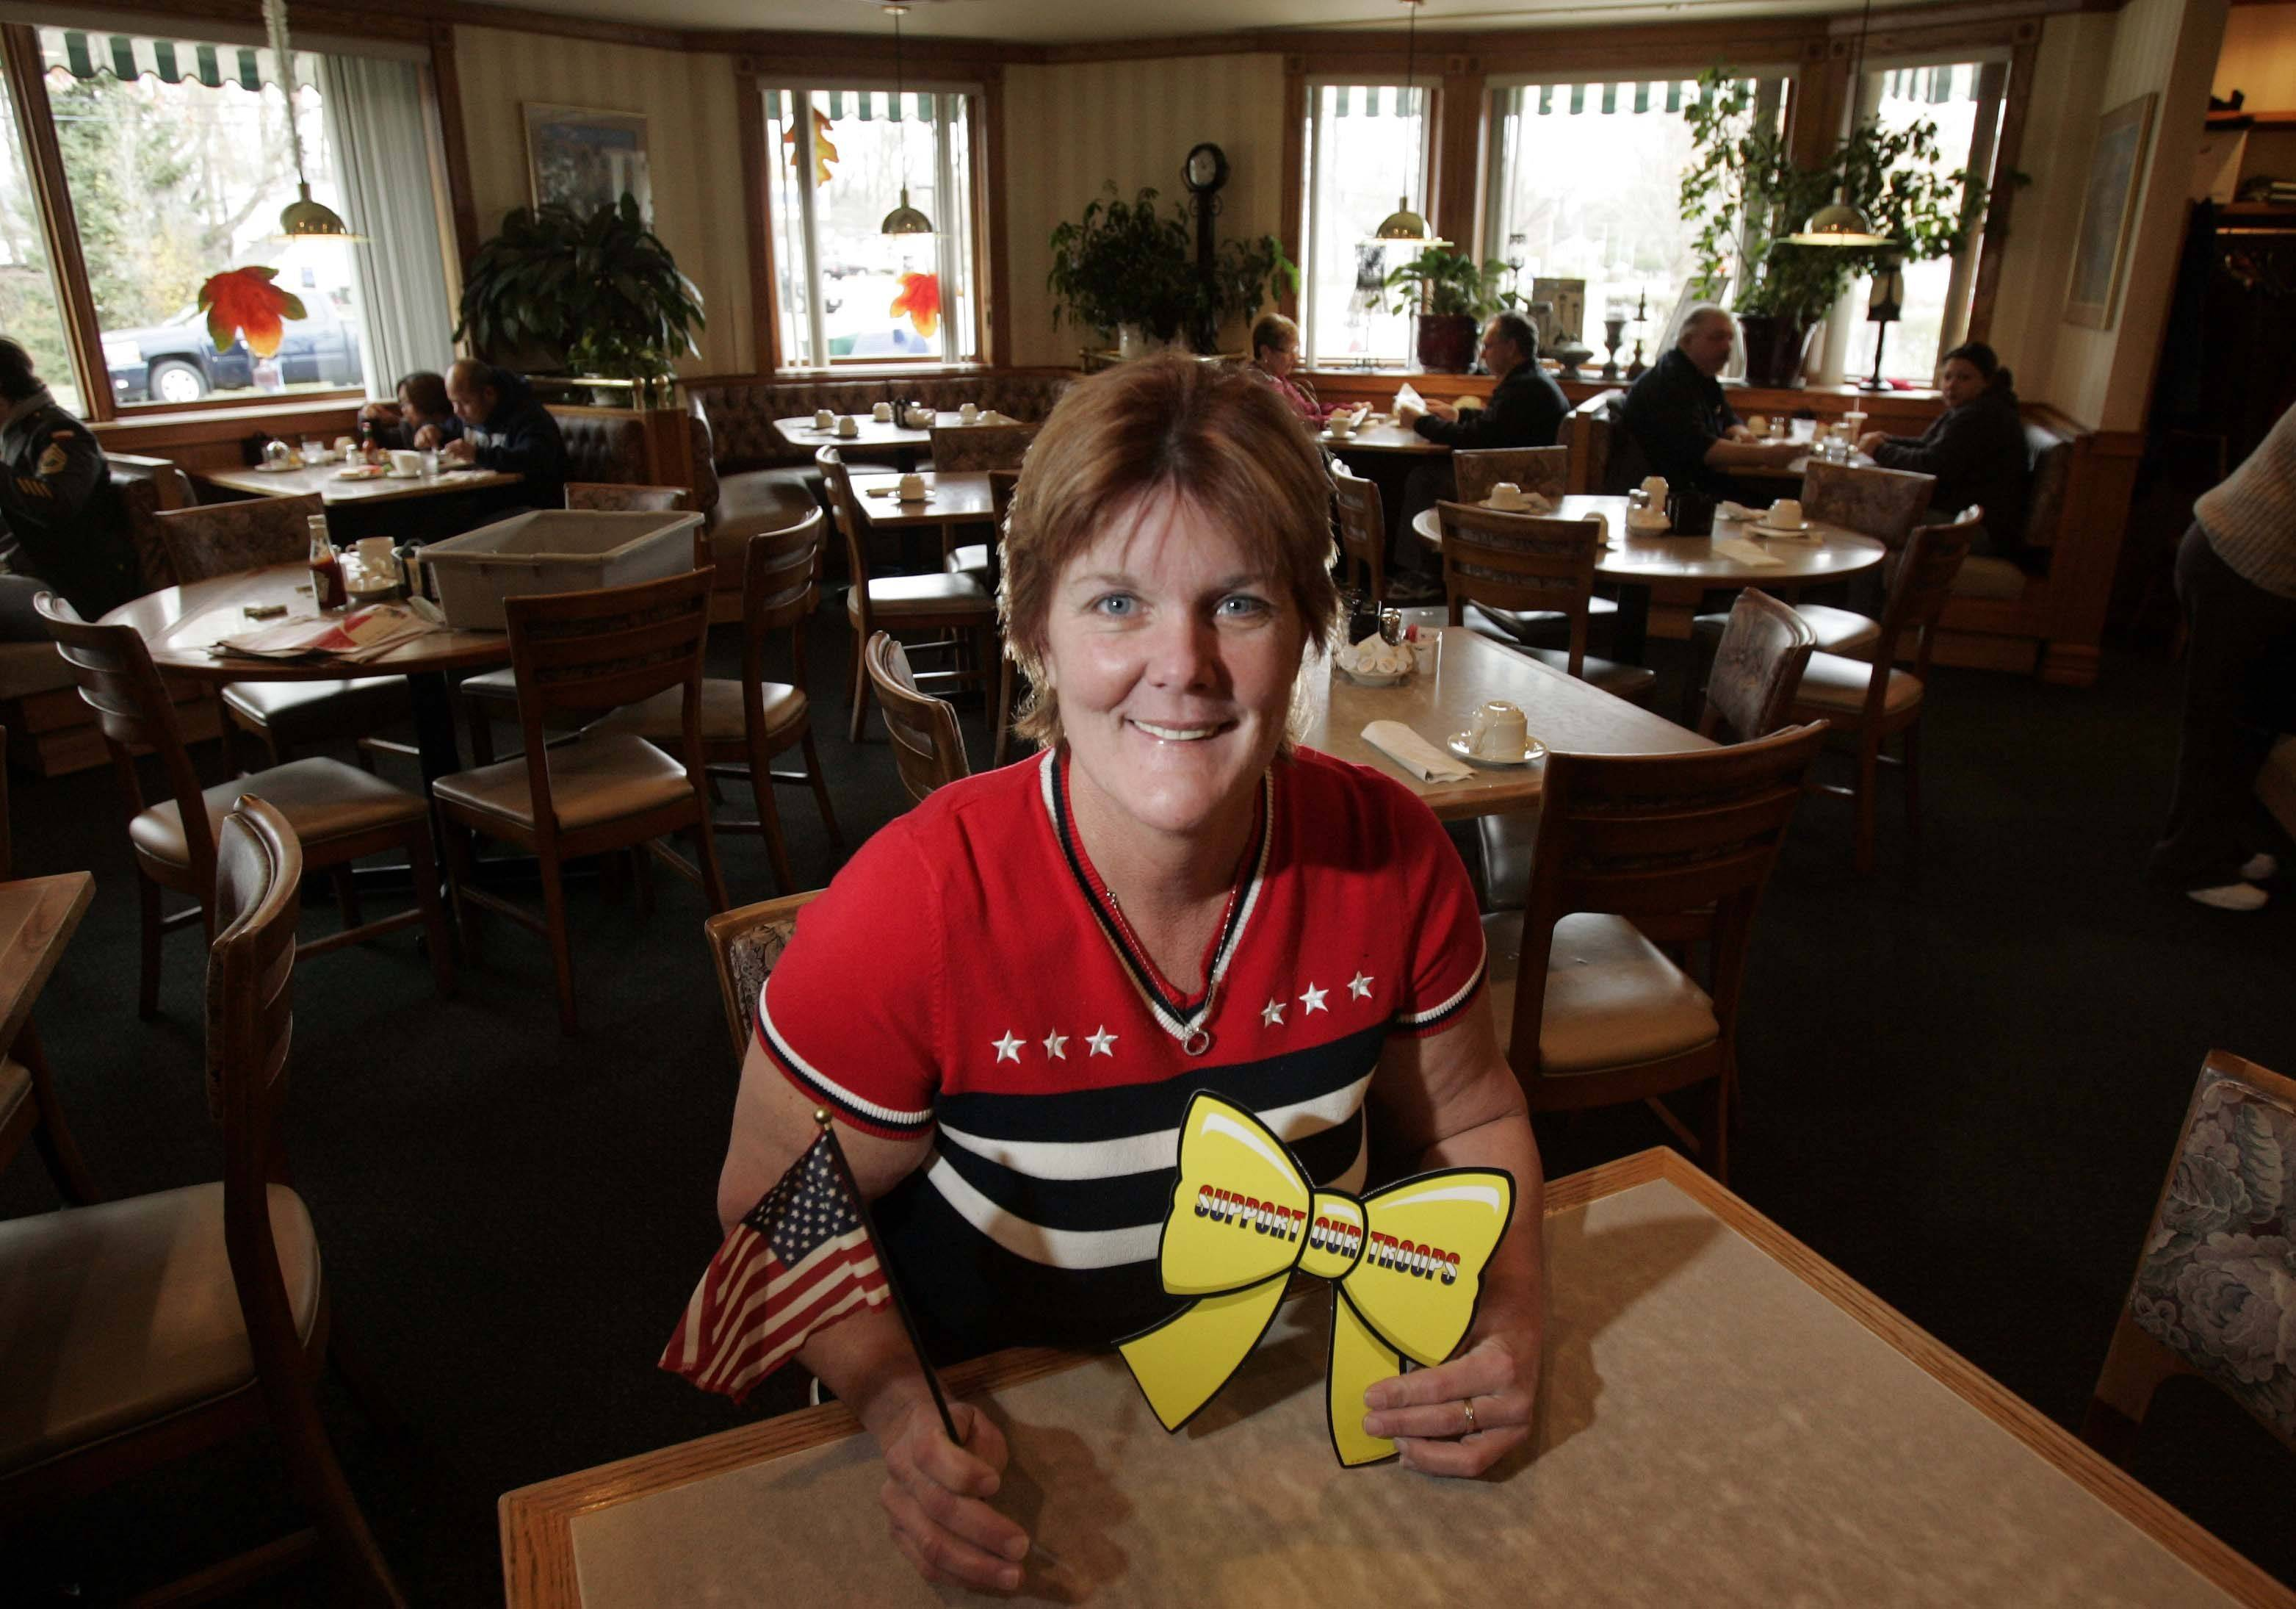 Lorrie Tucker of Paul's Restaurant in Elgin is collecting donations for the troops in Afghanistan through Dec. 1. Donations of candy, personal hygiene items and other small gifts are welcome.